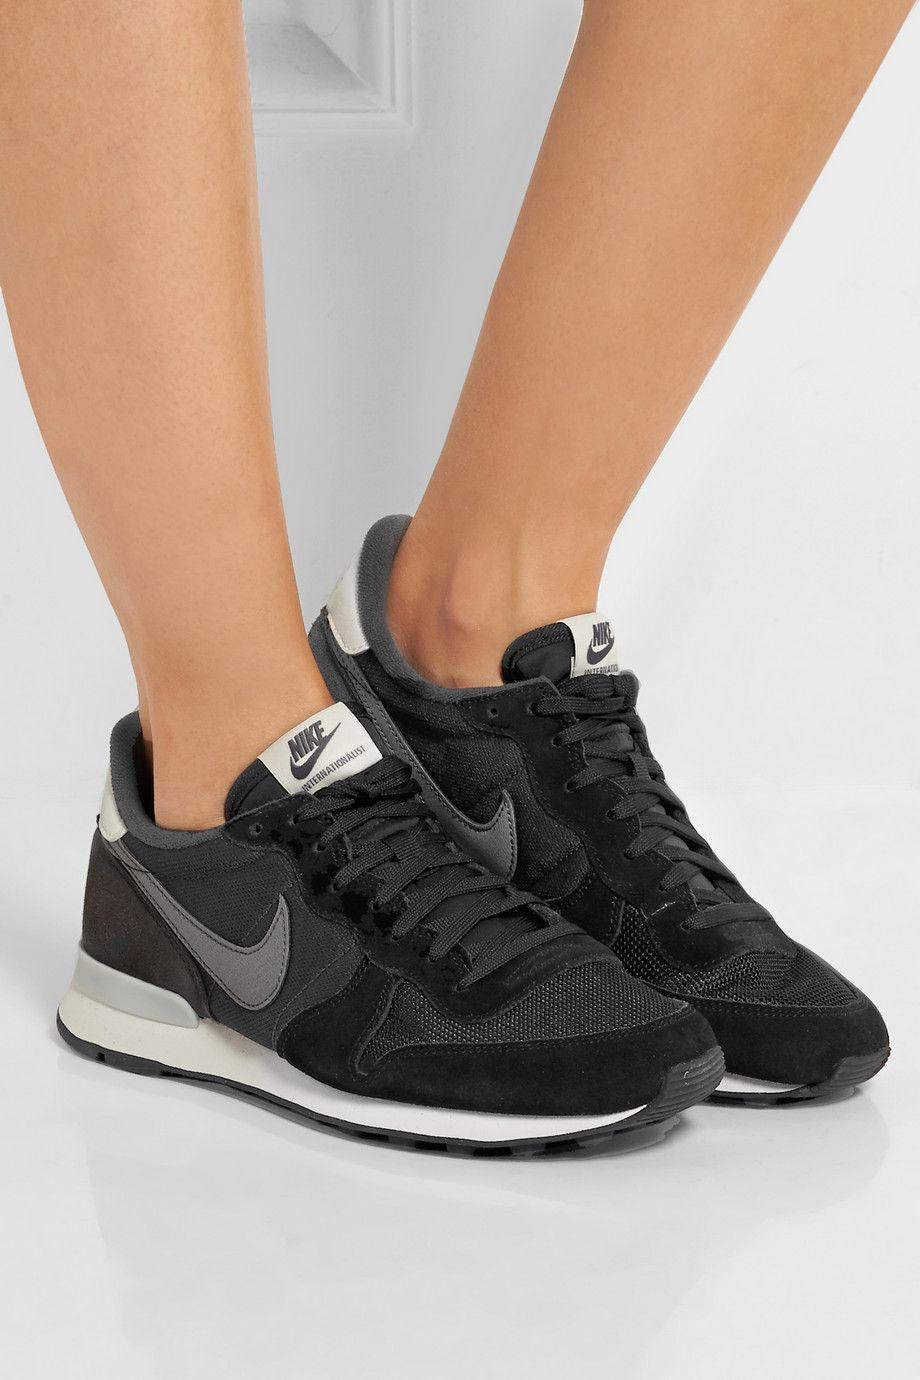 cheap for discount 8a262 5f1bd Nike  Internationalist suede, leather and mesh sneakers  NET-A-PORTER.COM